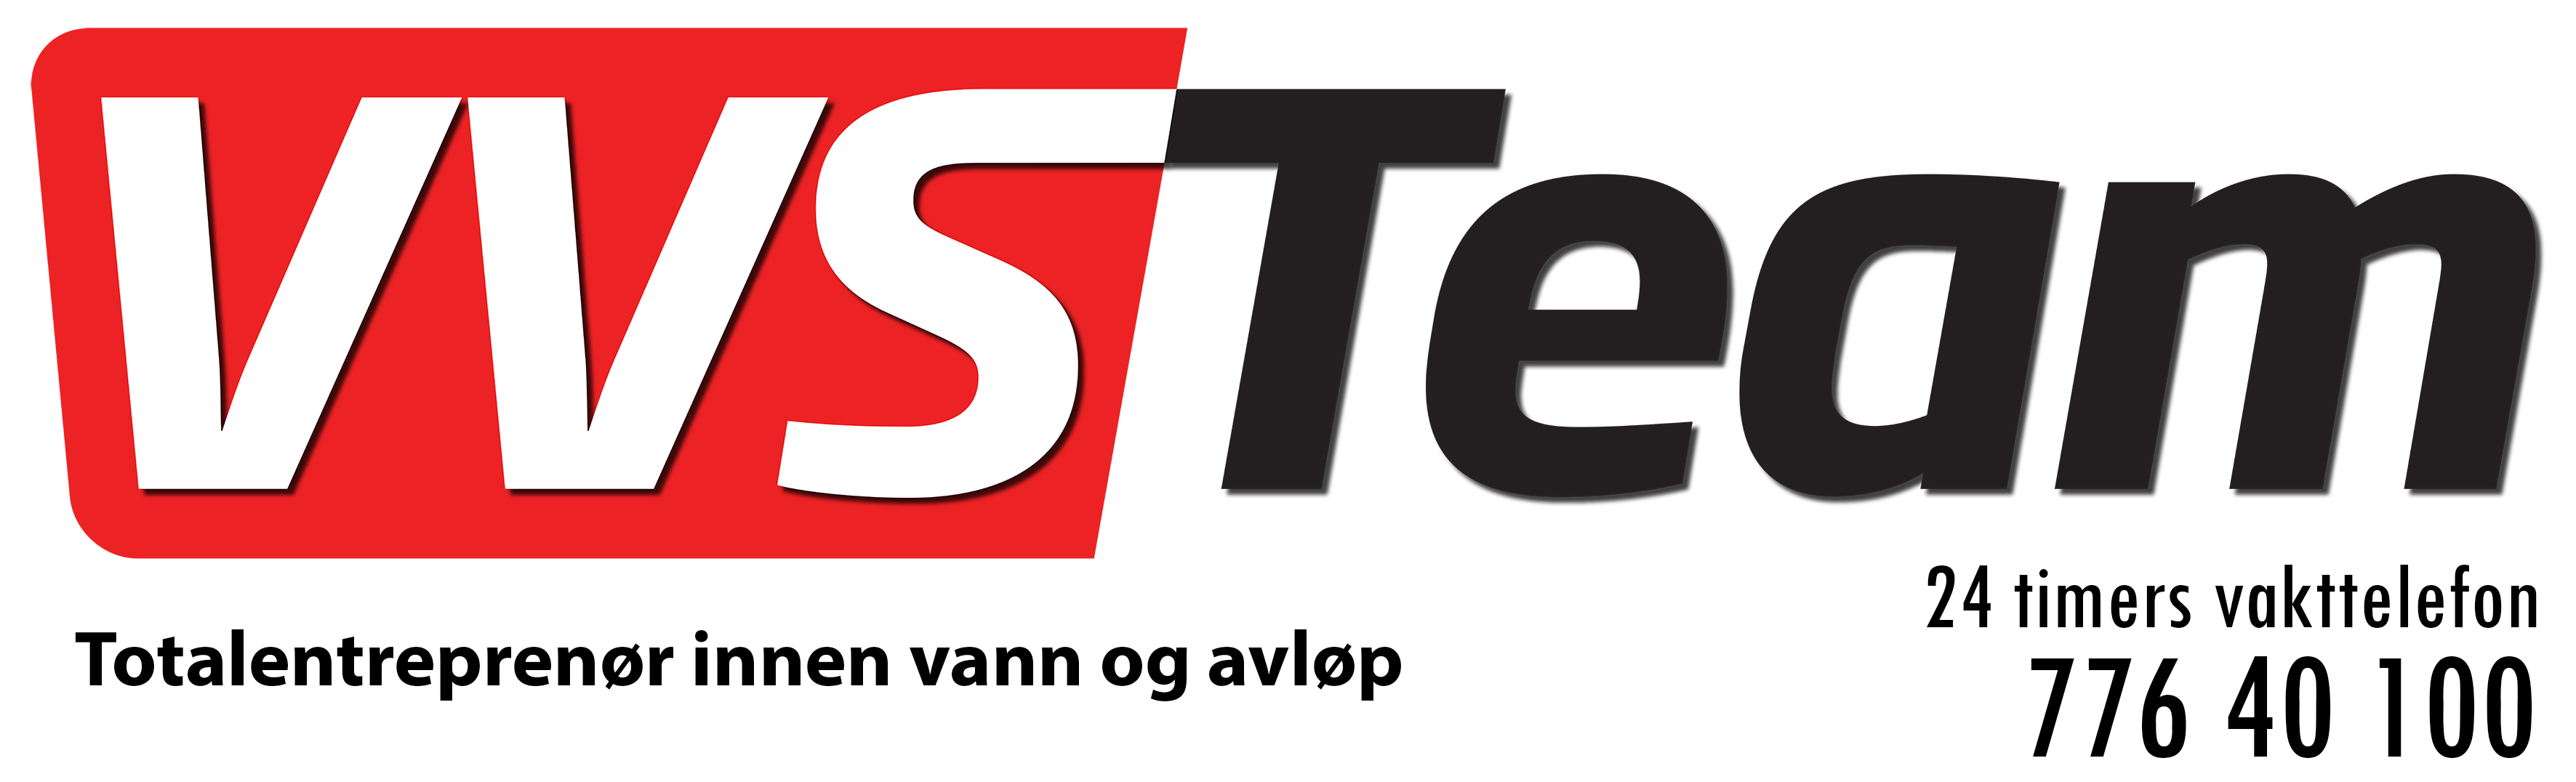 VVSTeam Tromsø